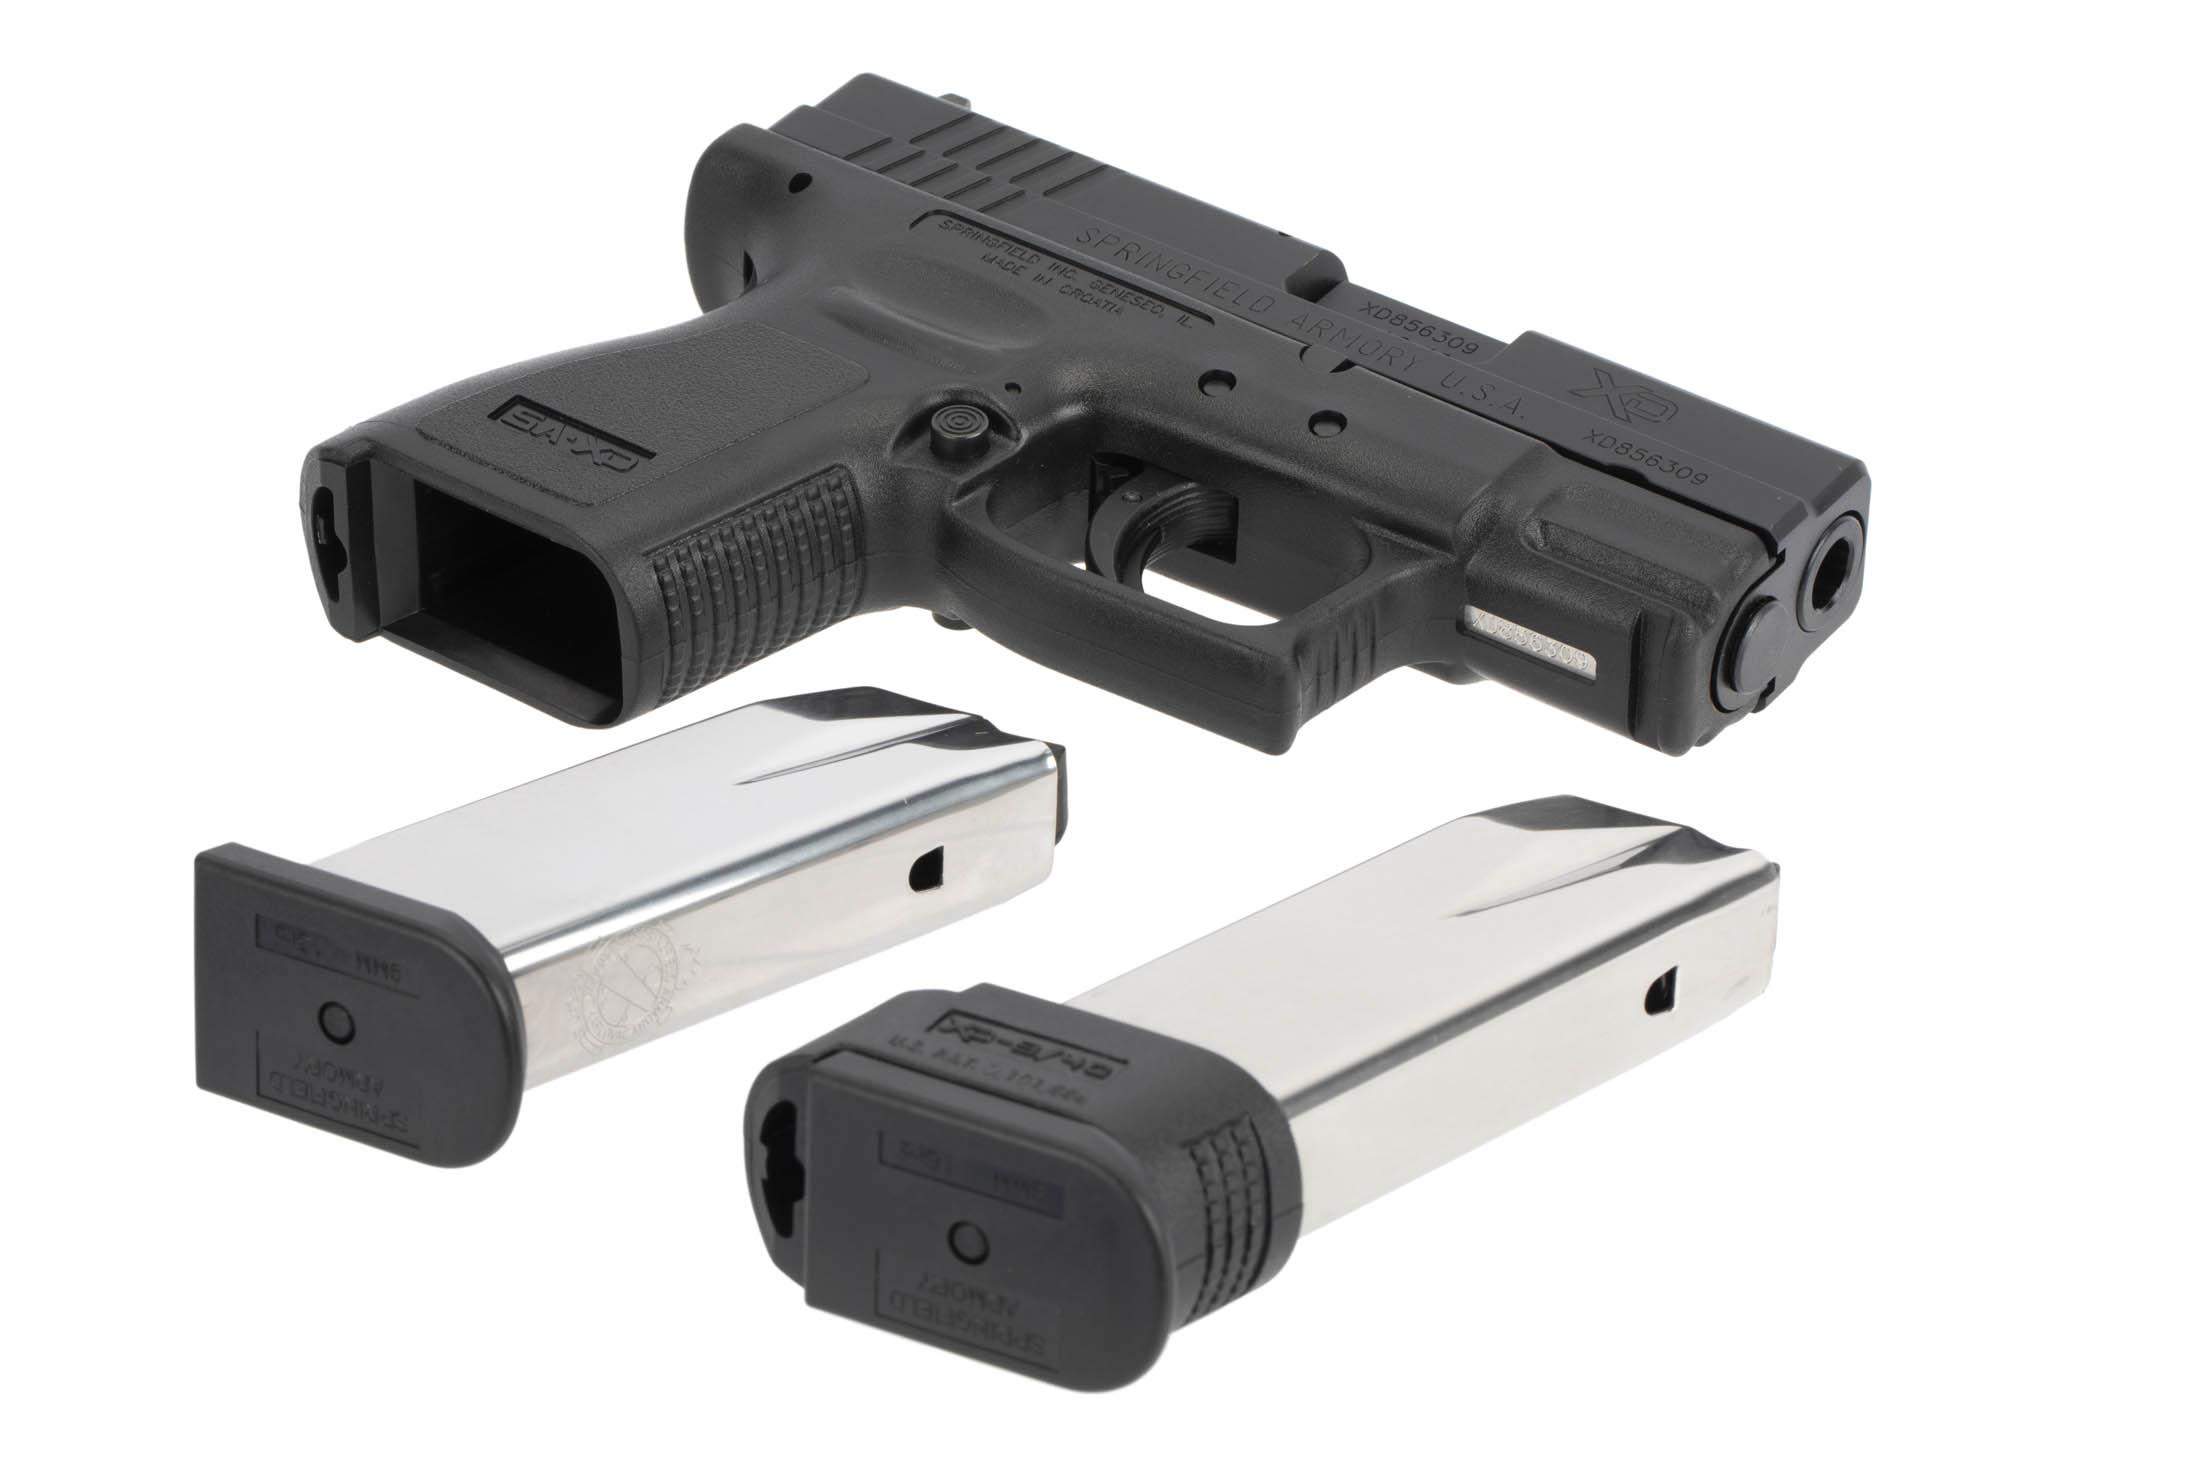 The Springfield Armory XD9 is a 9mm Sub Compact 16 round Handgun with two magazines